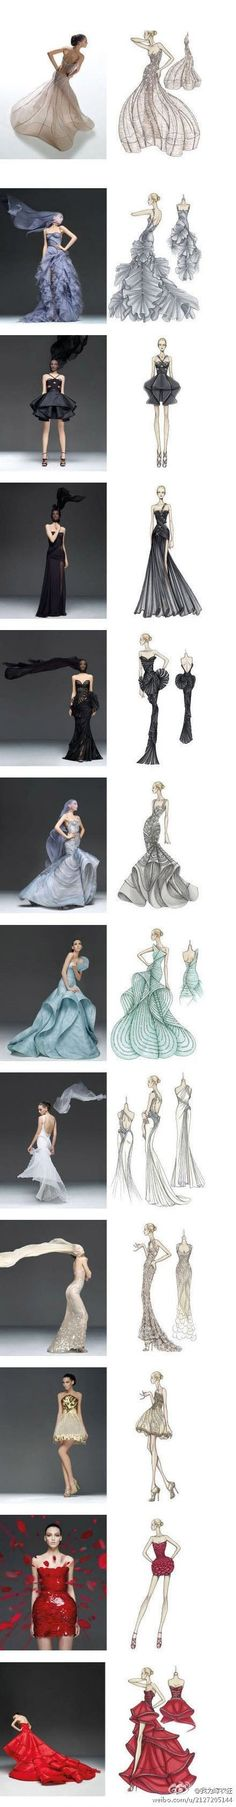 Illustrations and the fashions together. Lovely!